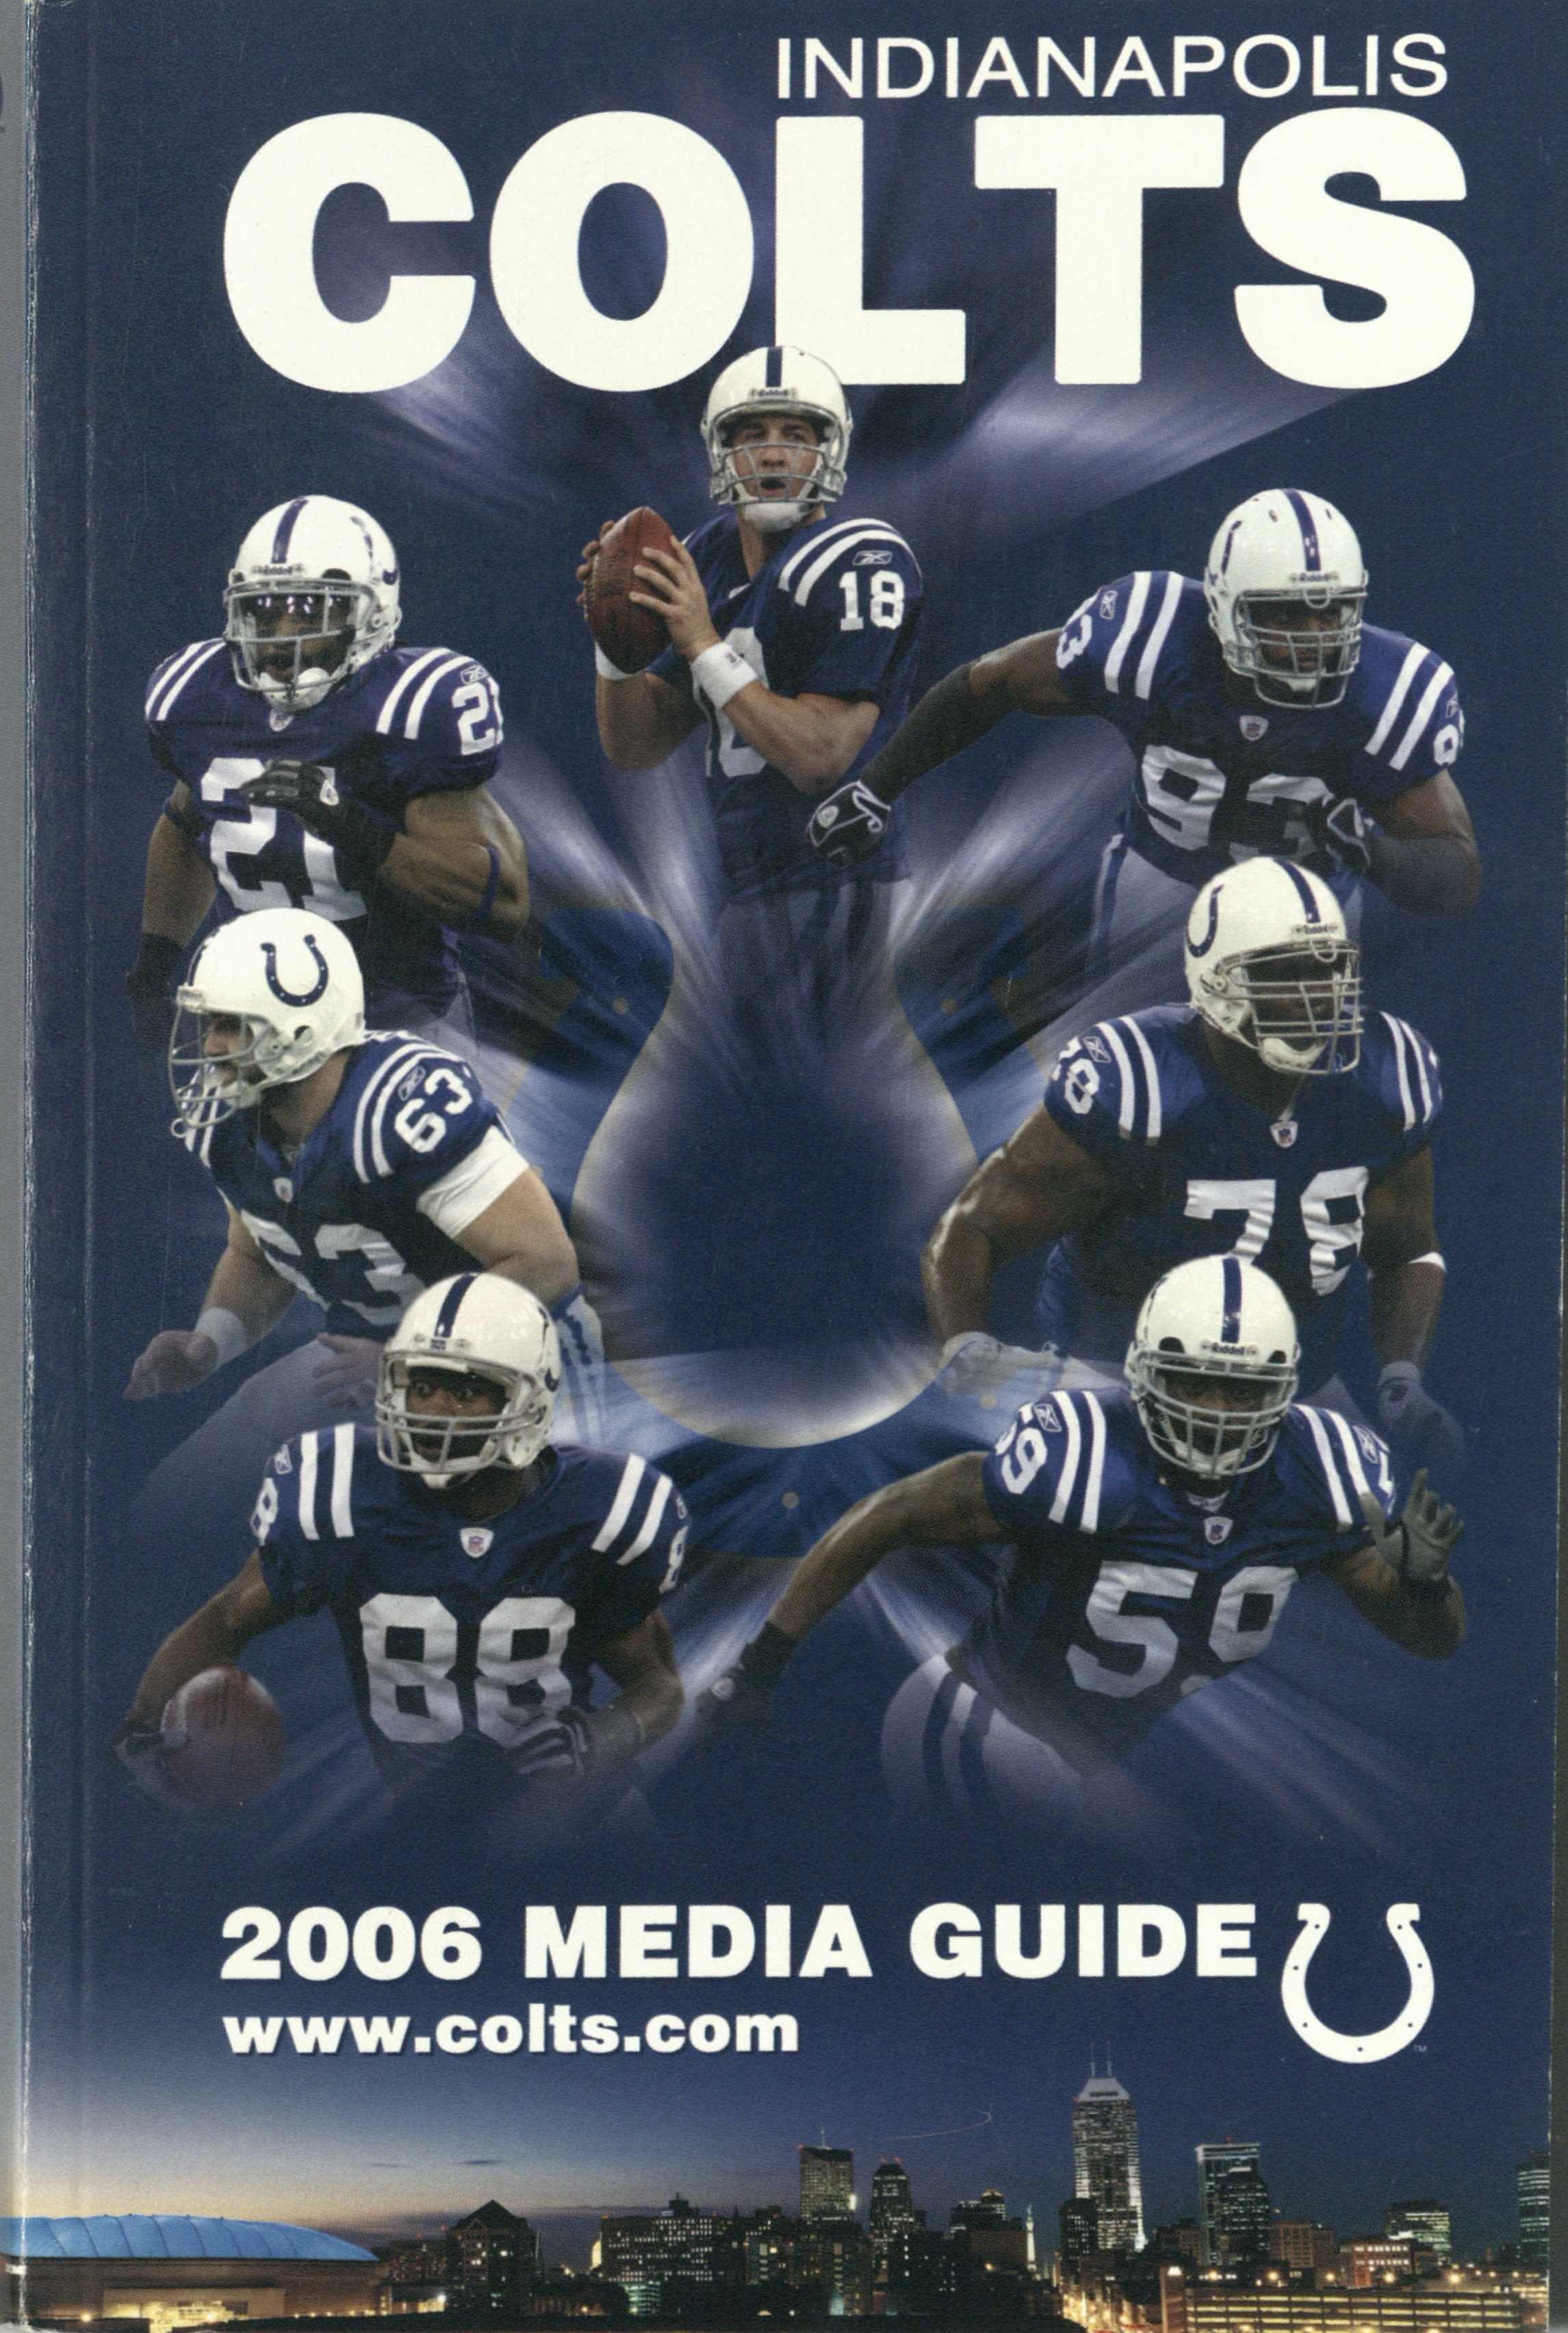 COLTS_2006_Cover